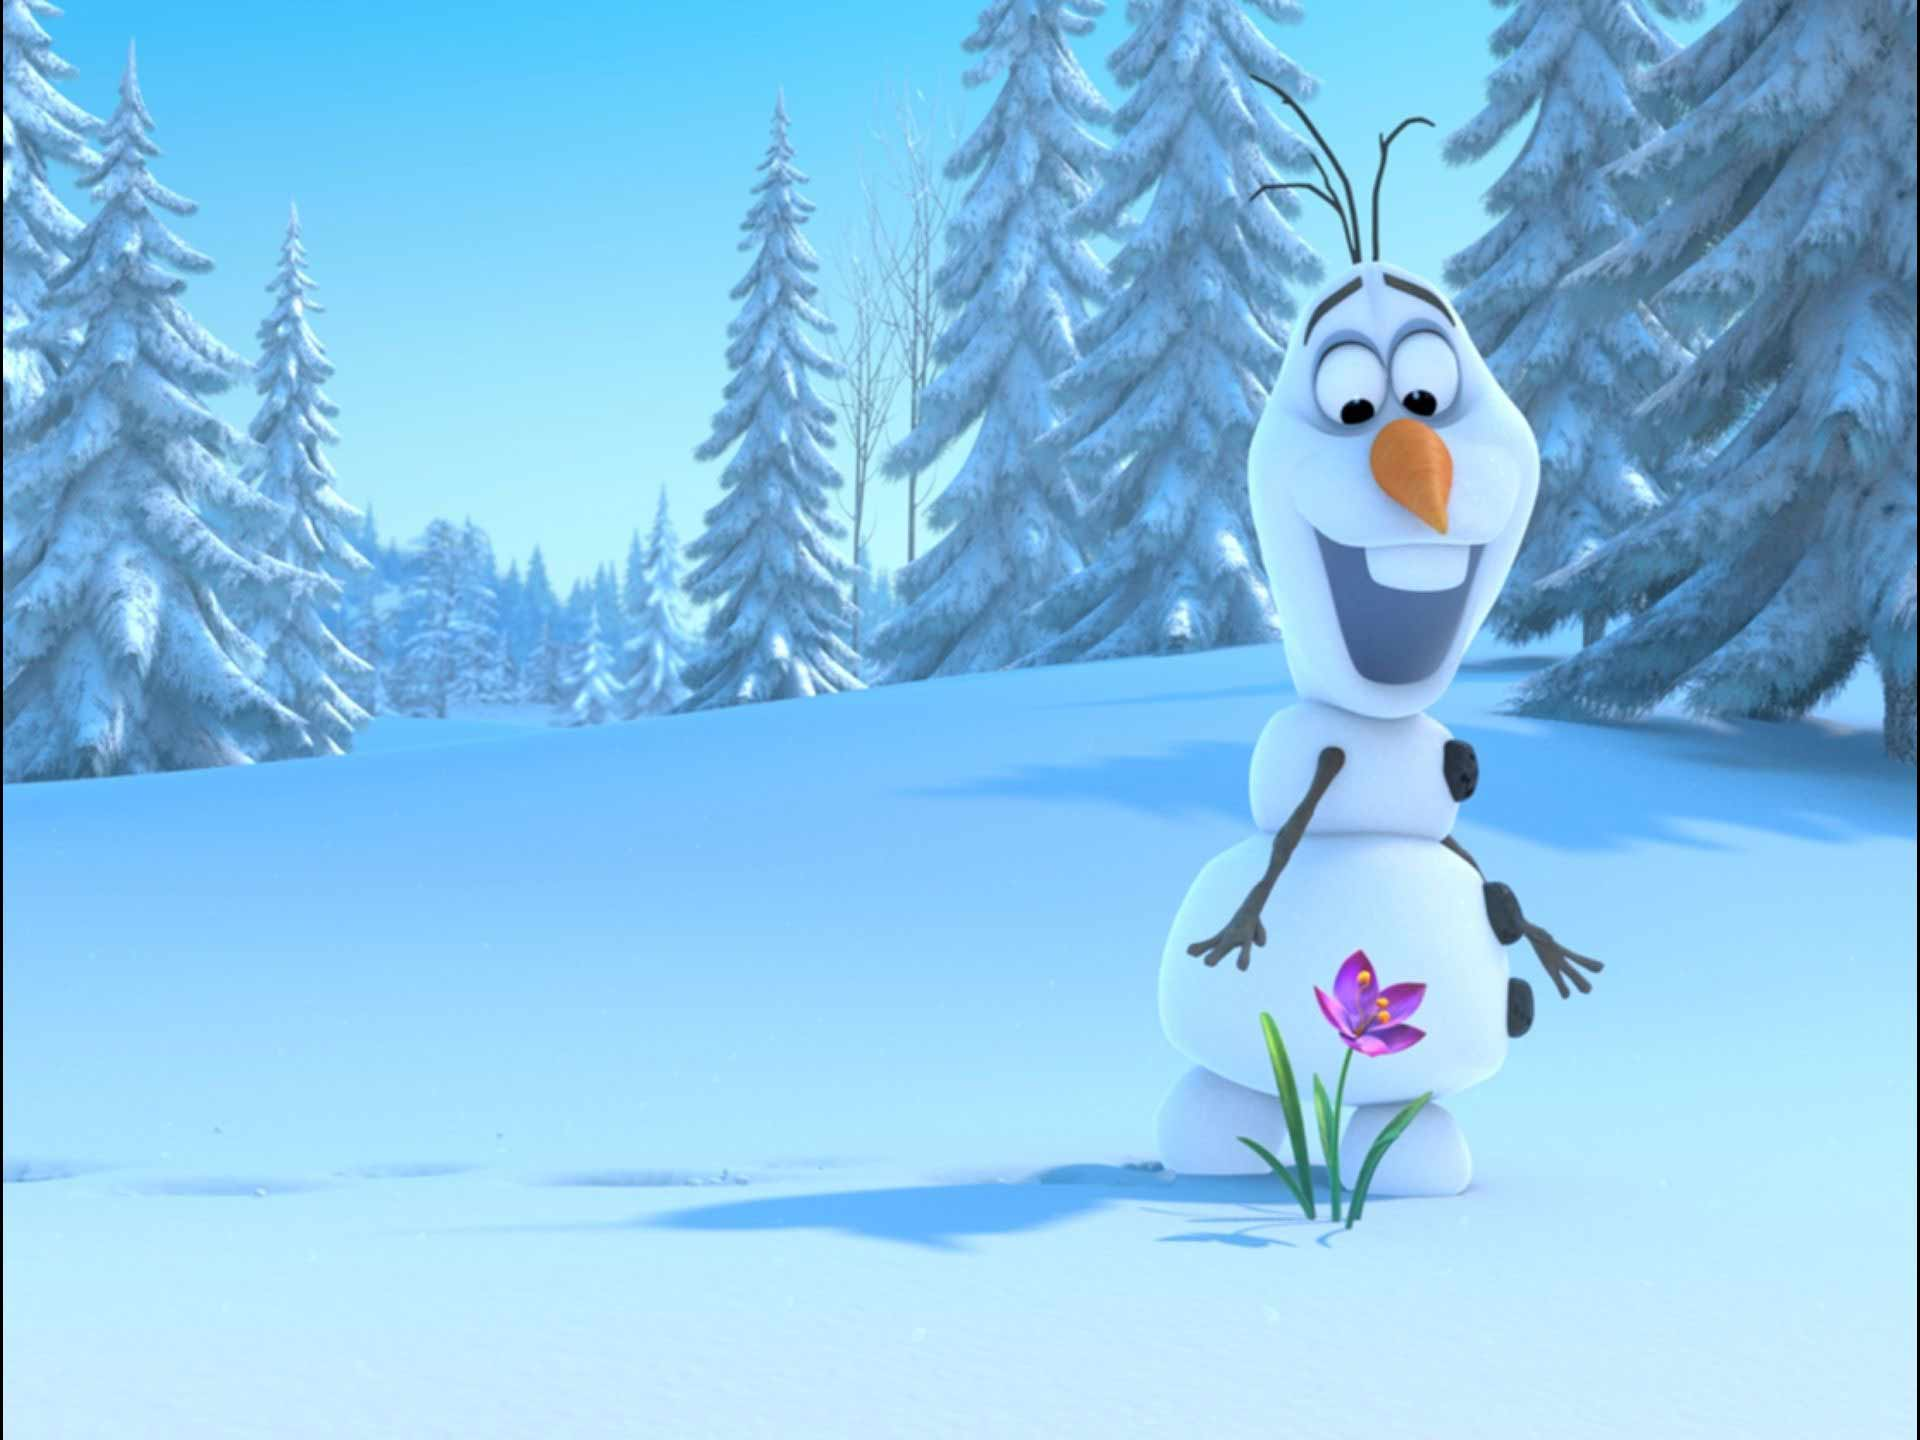 Frozen Image Wallpapers 24 Wallpapers – Adorable Wallpapers